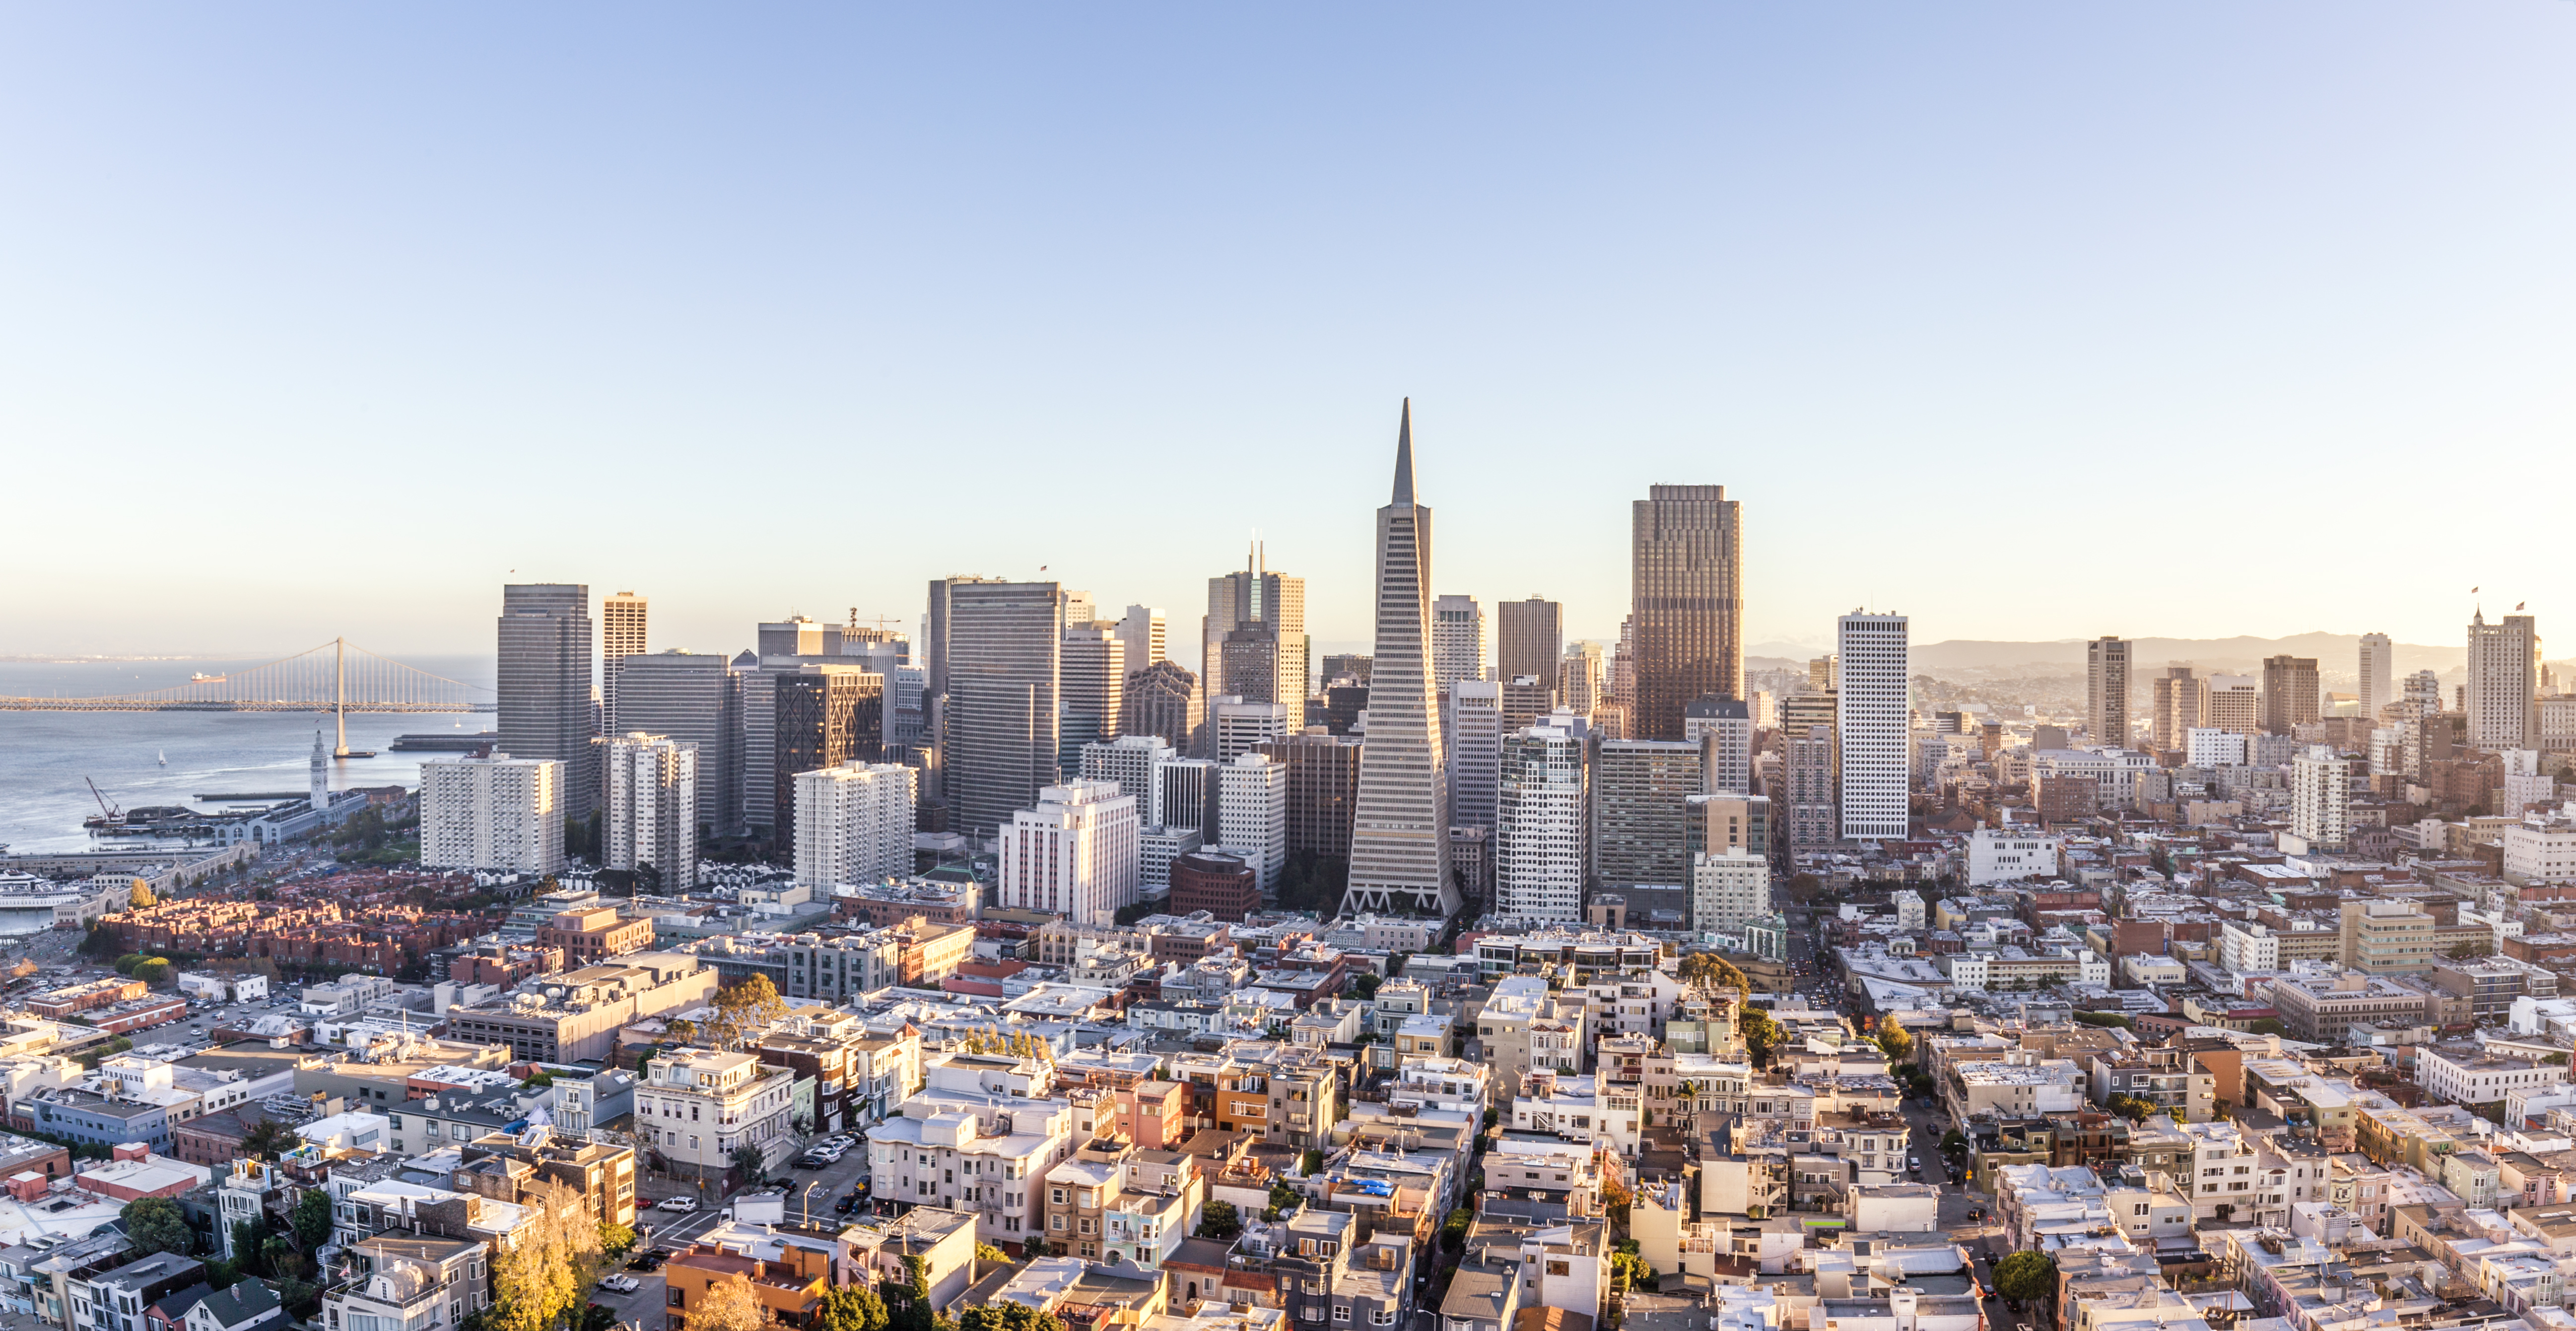 An aerial view of the San Francisco skyline. There are skyscrapers and no clouds in a light blue sky.